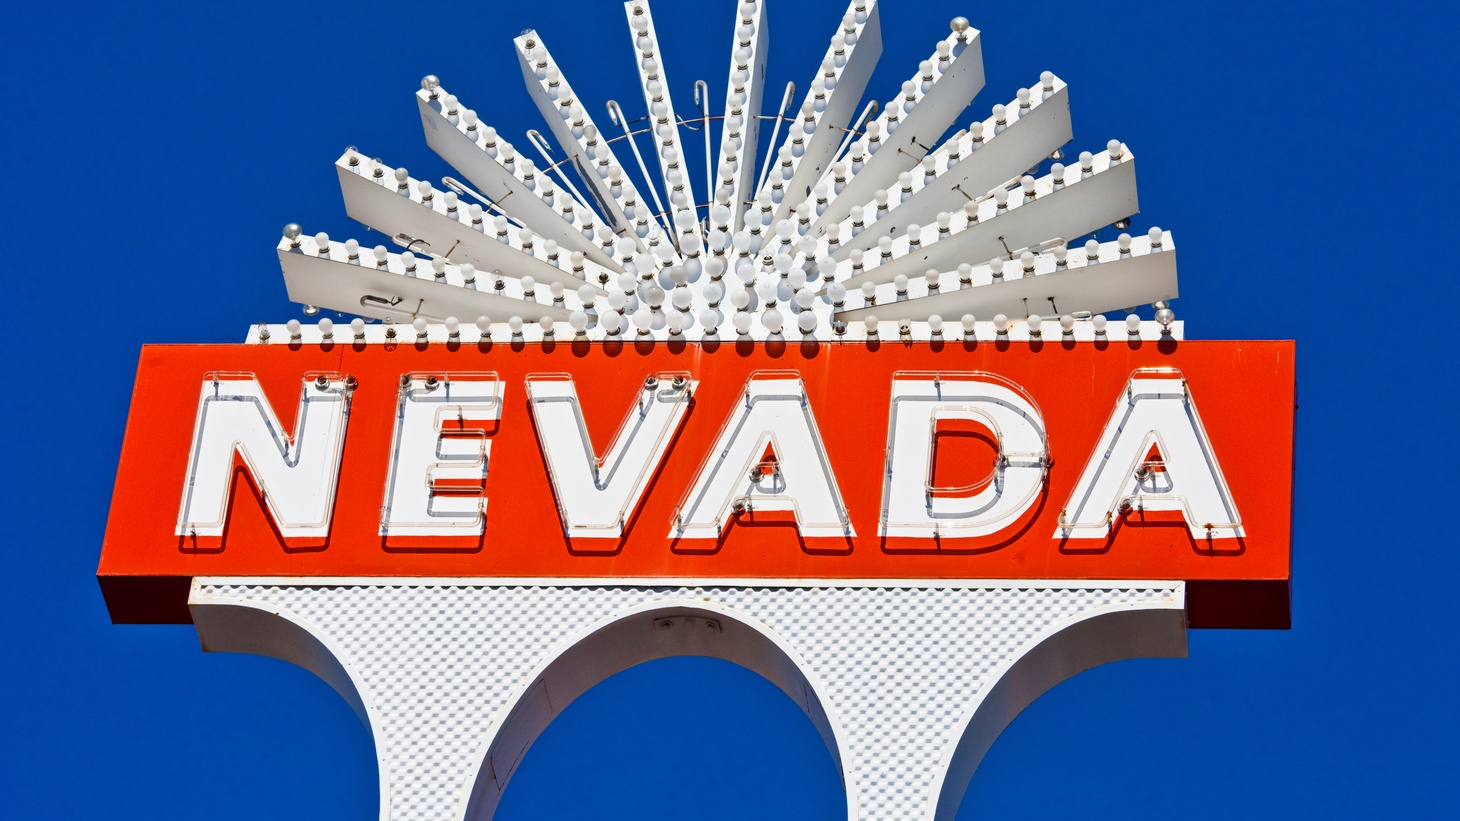 Today we look at two Nevada stories: The upcoming GOP caucus there, and how coverage of the presidential race by the Las Vegas Review-Journal is affected by its new ownership.